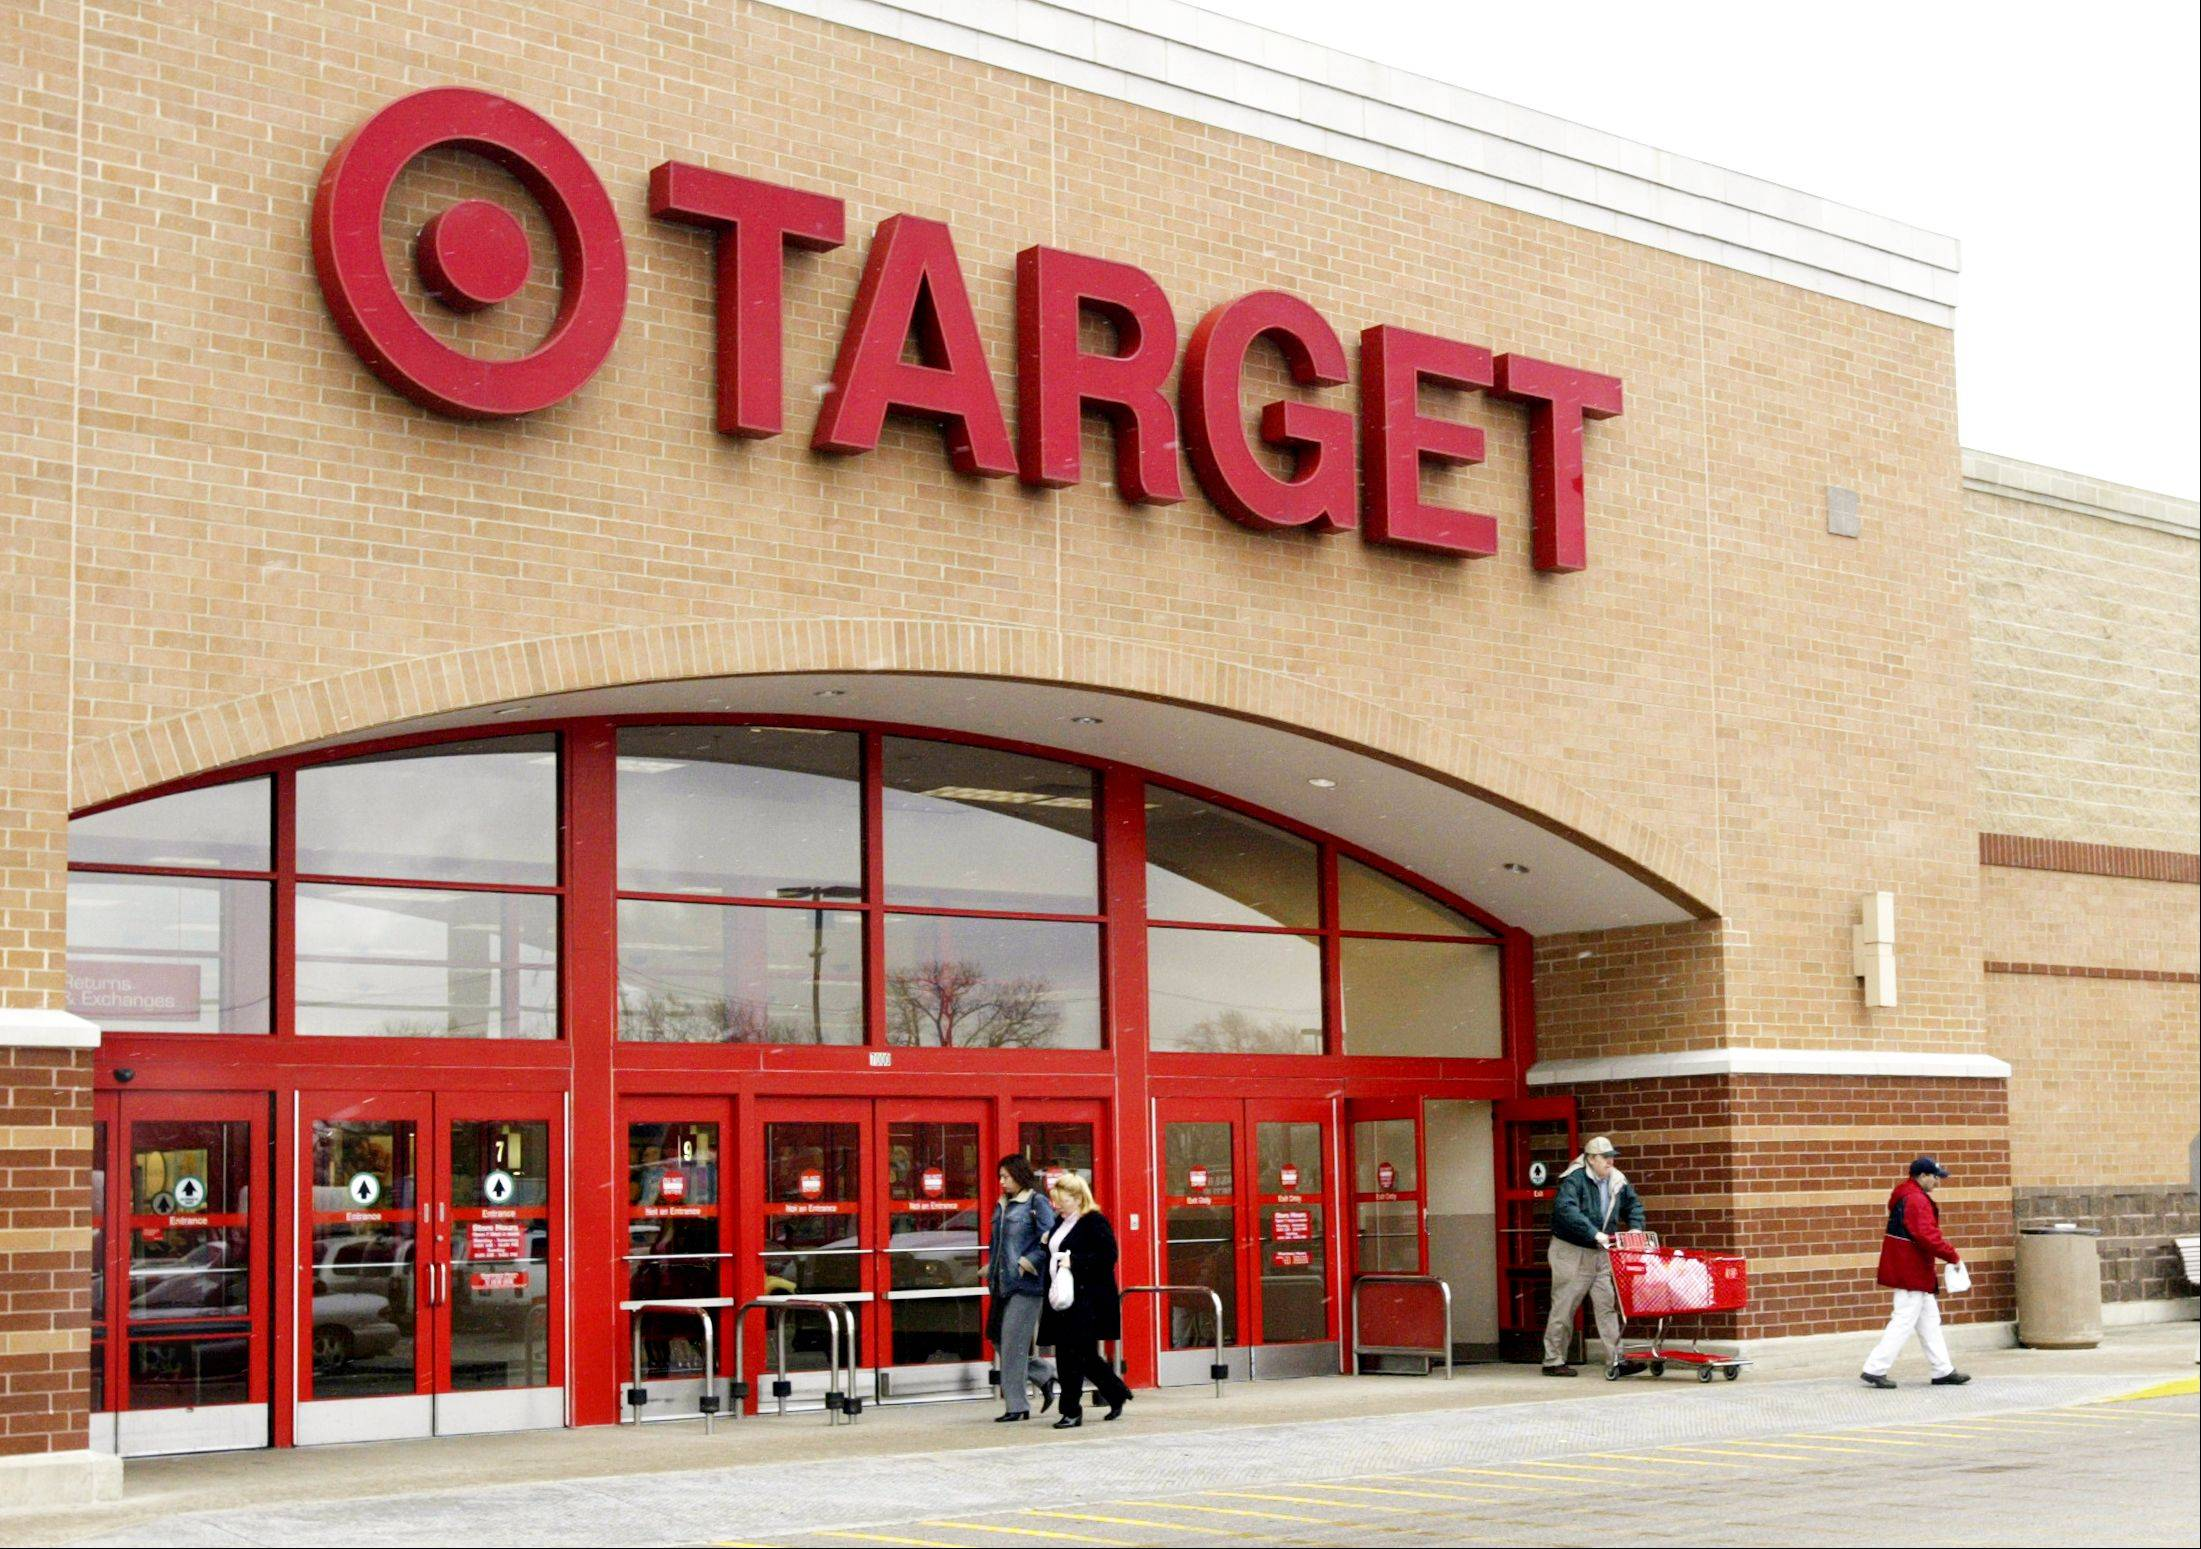 Discount retailer Target Corp. said Thursday that a key revenue measure rose 3.1 percent in January as shoppers bought holiday clearance merchandise.